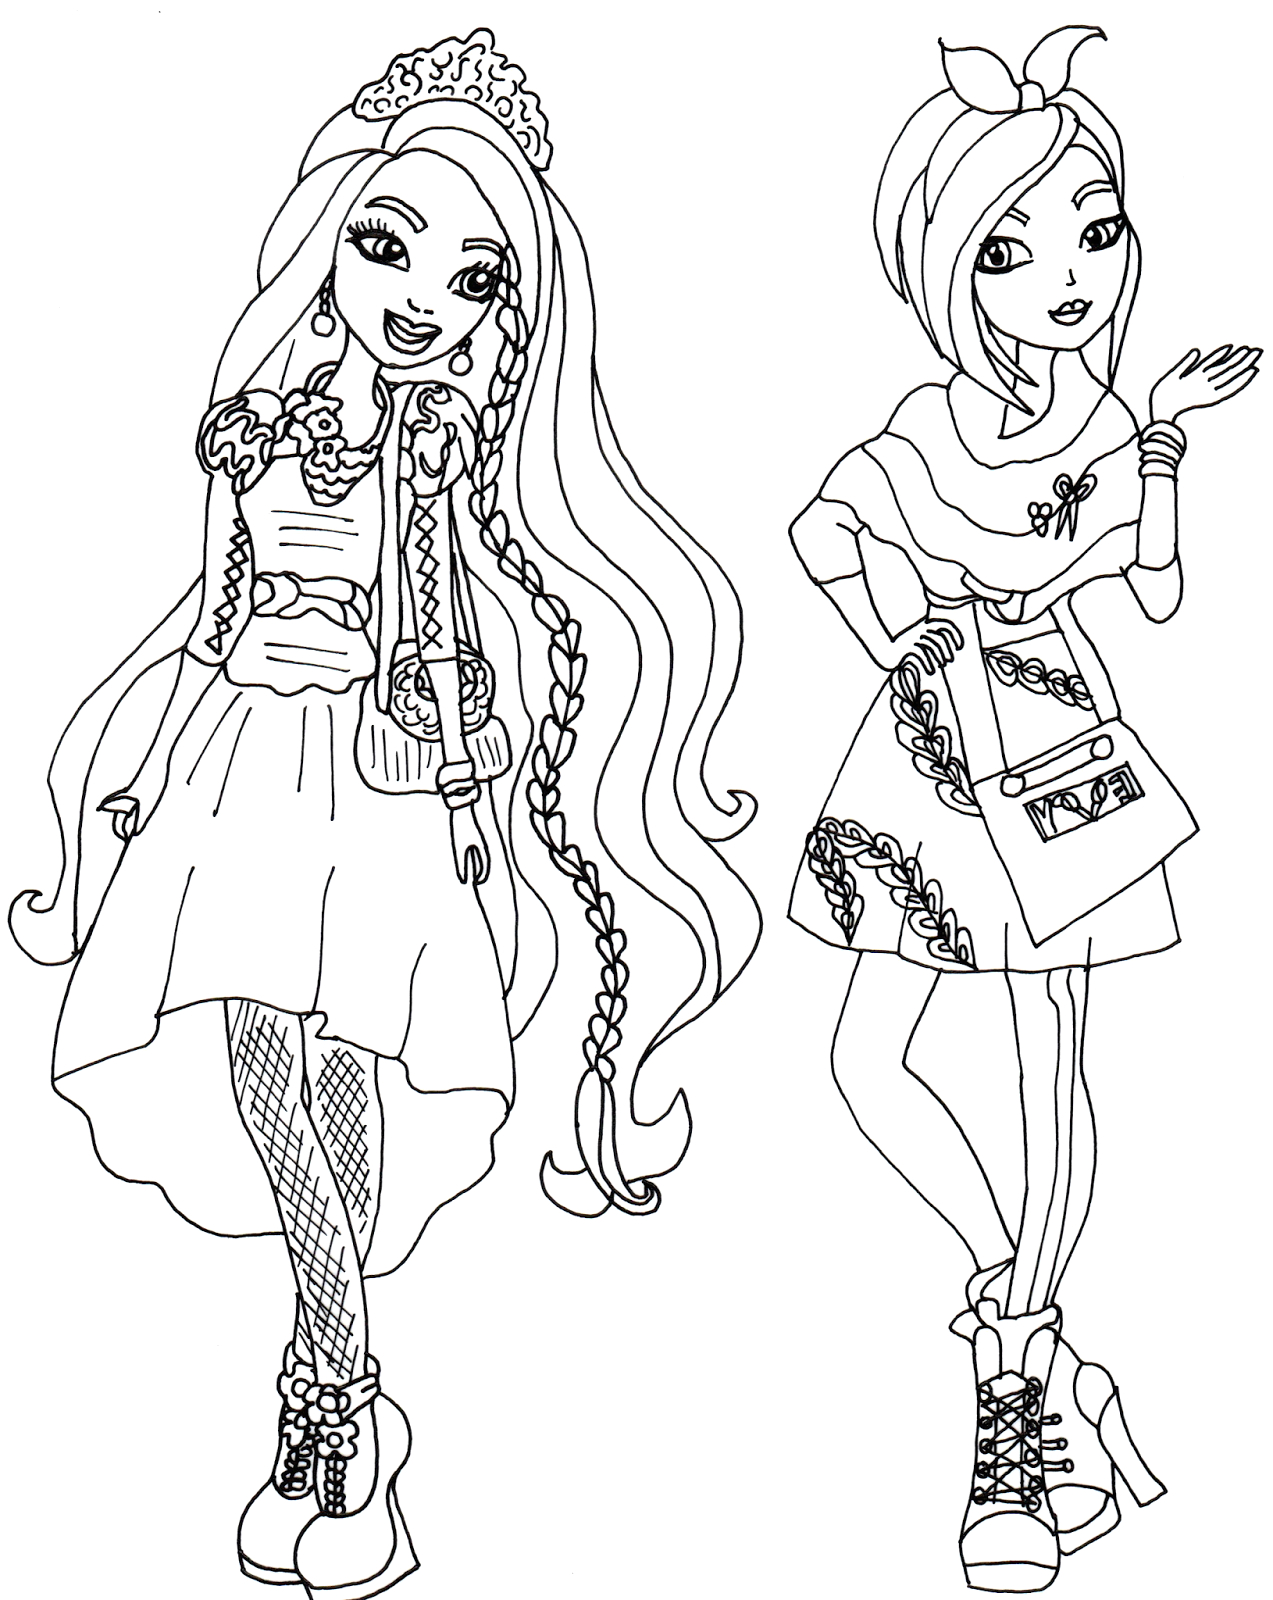 Coloring Pages for Girls Ever after High Free Printable Ever after High Coloring Pages Holly and